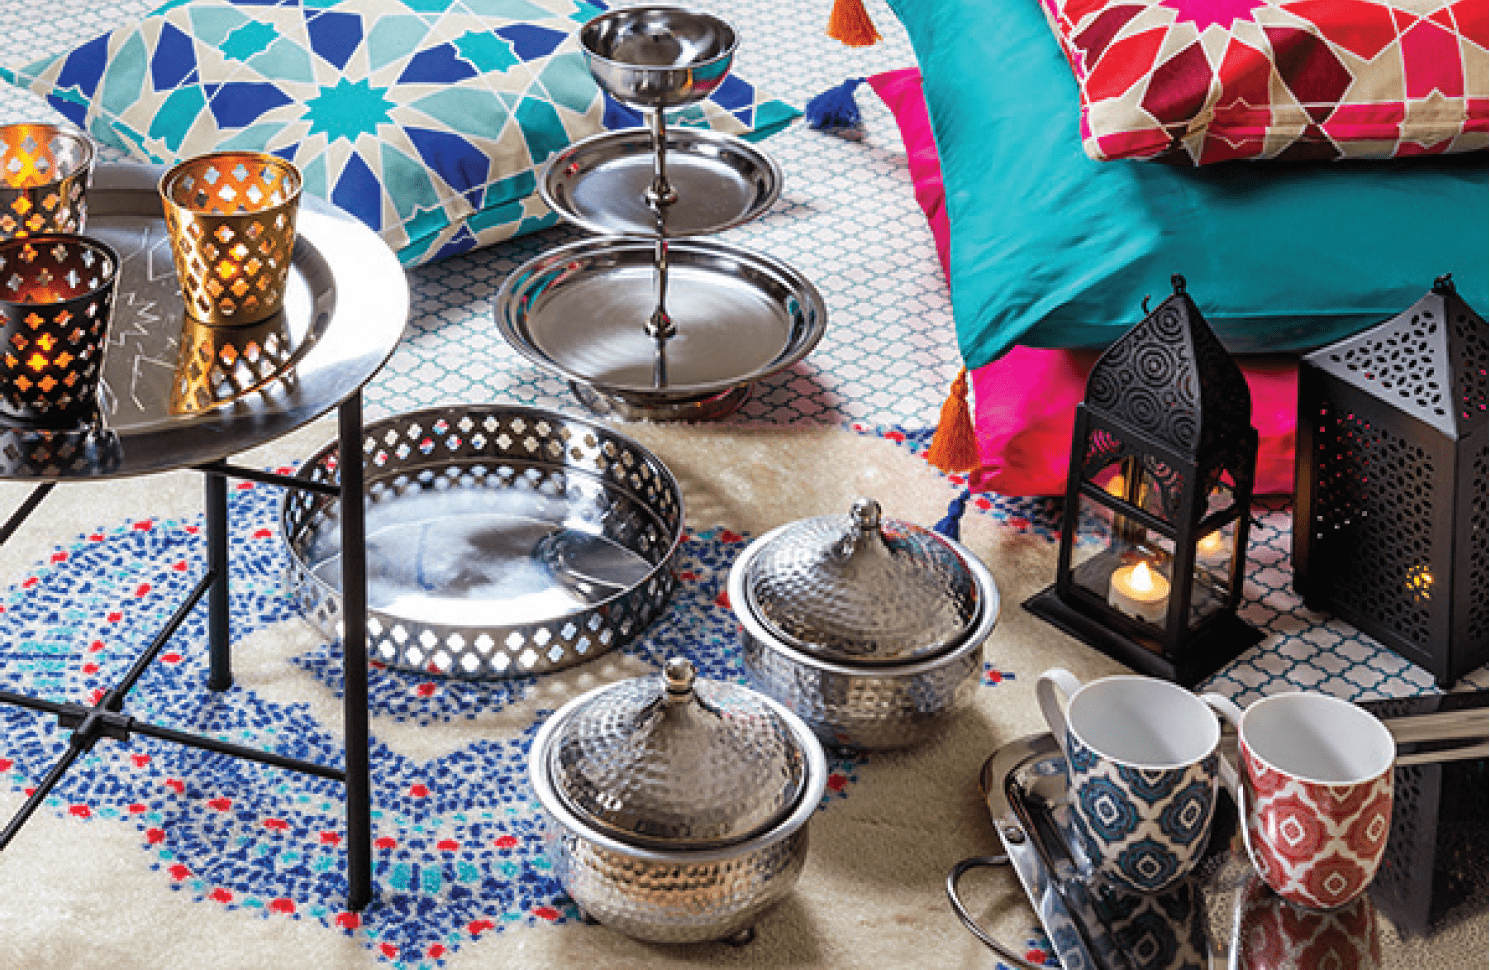 Simple Decoration Tweaks Specifically For The Holy Month Of Ramadan - IKEA Qatar